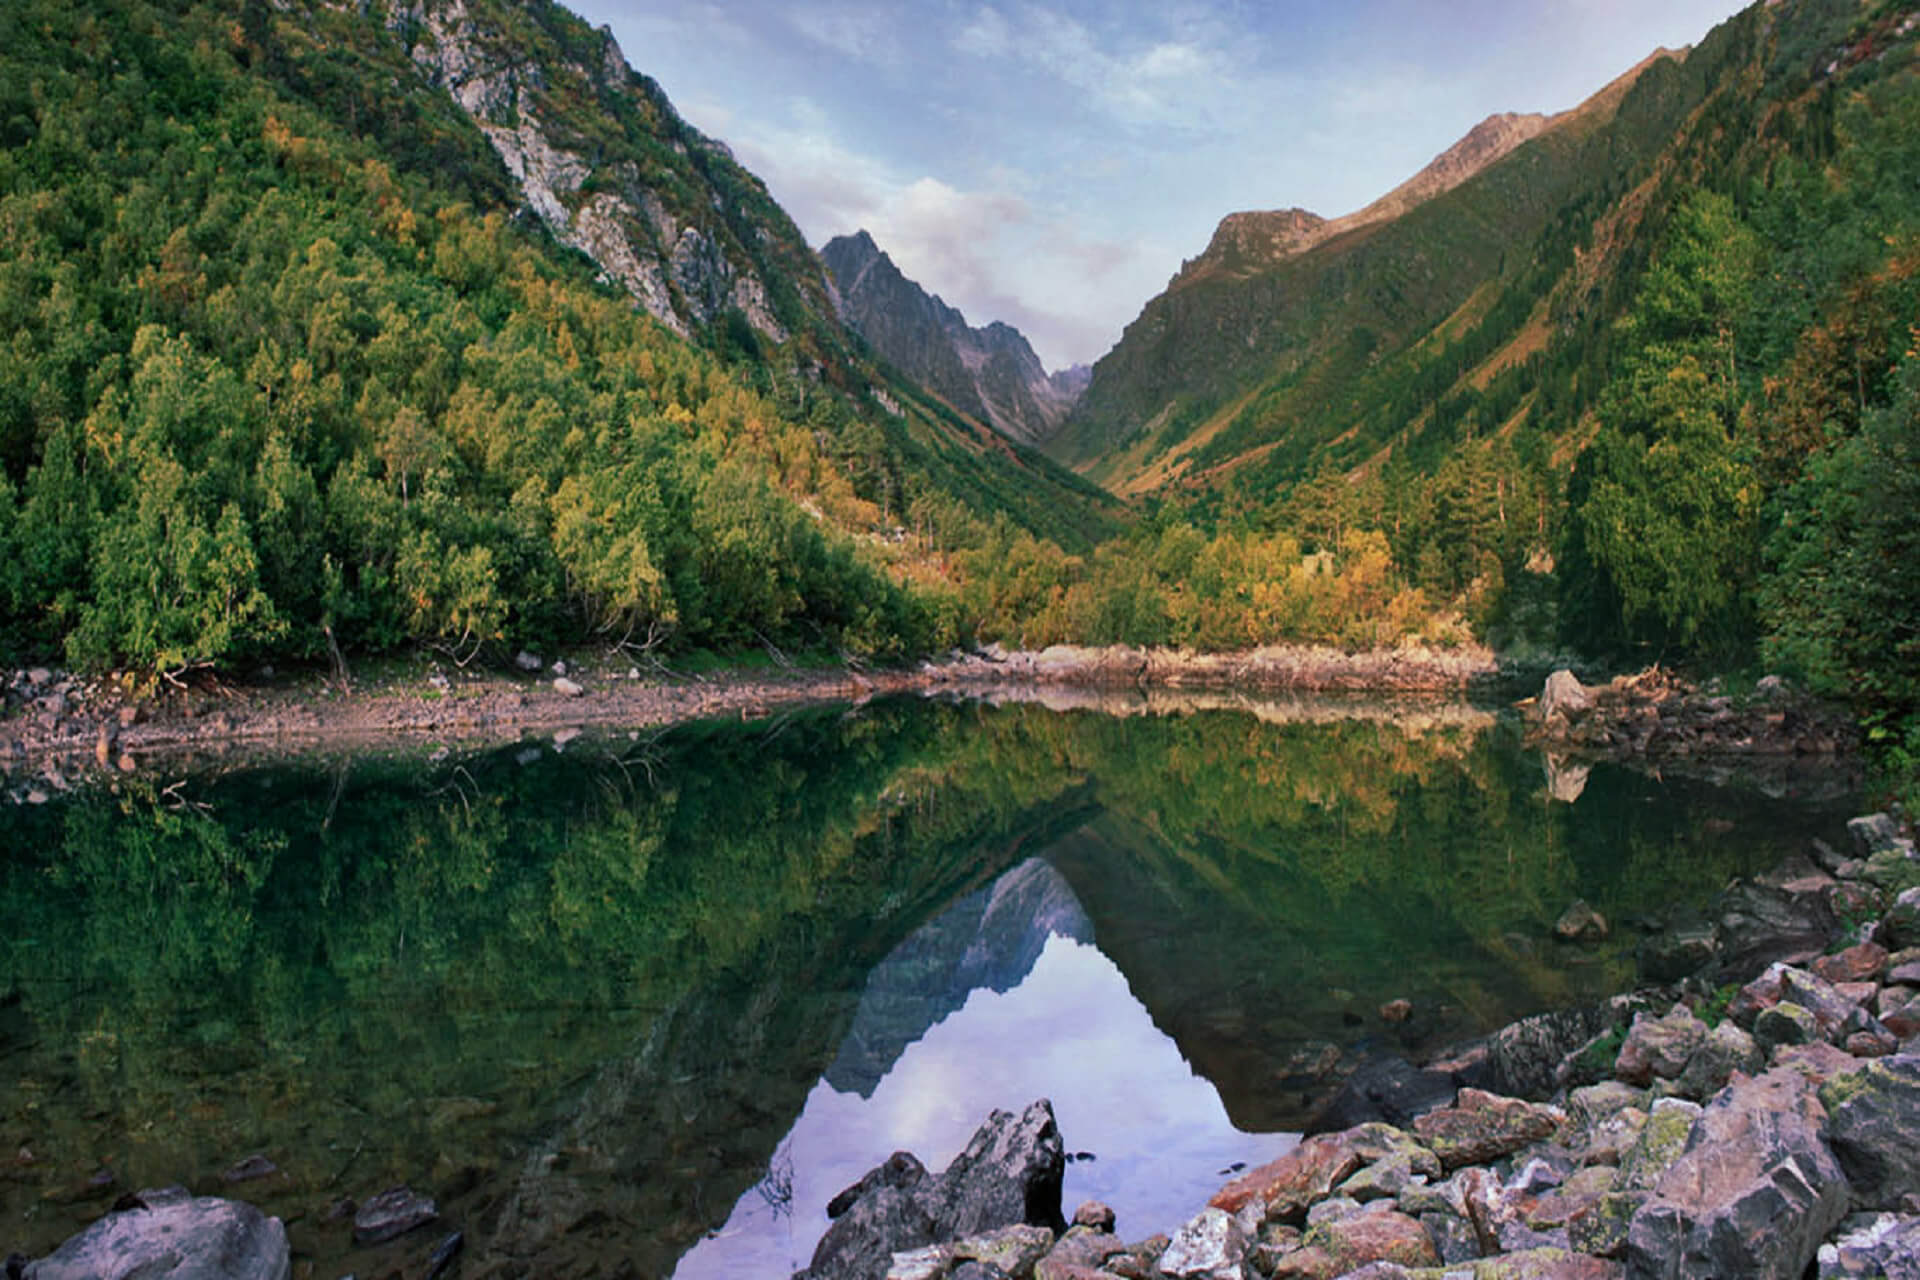 Lake Karachay The lake of death - just 1 hour here will kill you